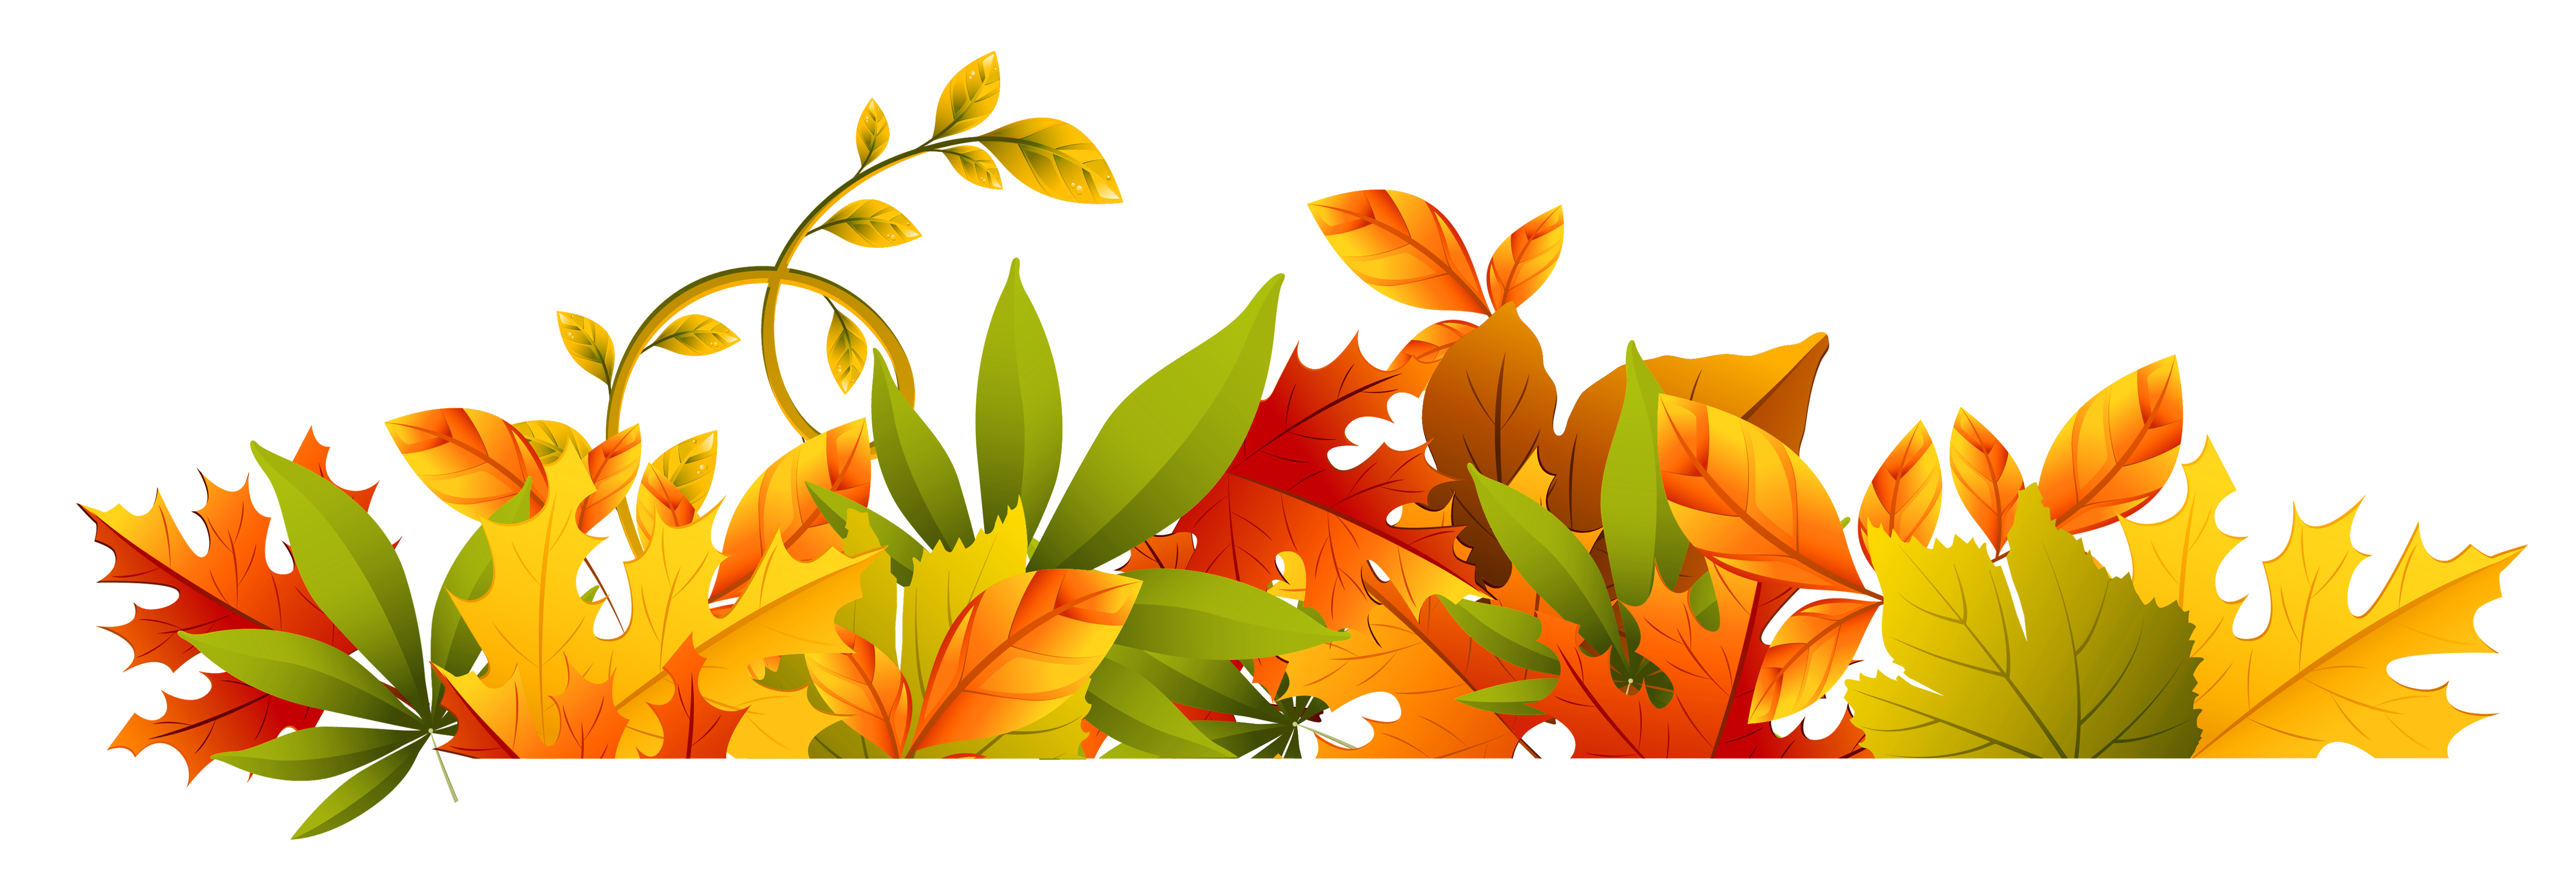 Autumn Cute Fall Png Free Png Images 2 Pngcow